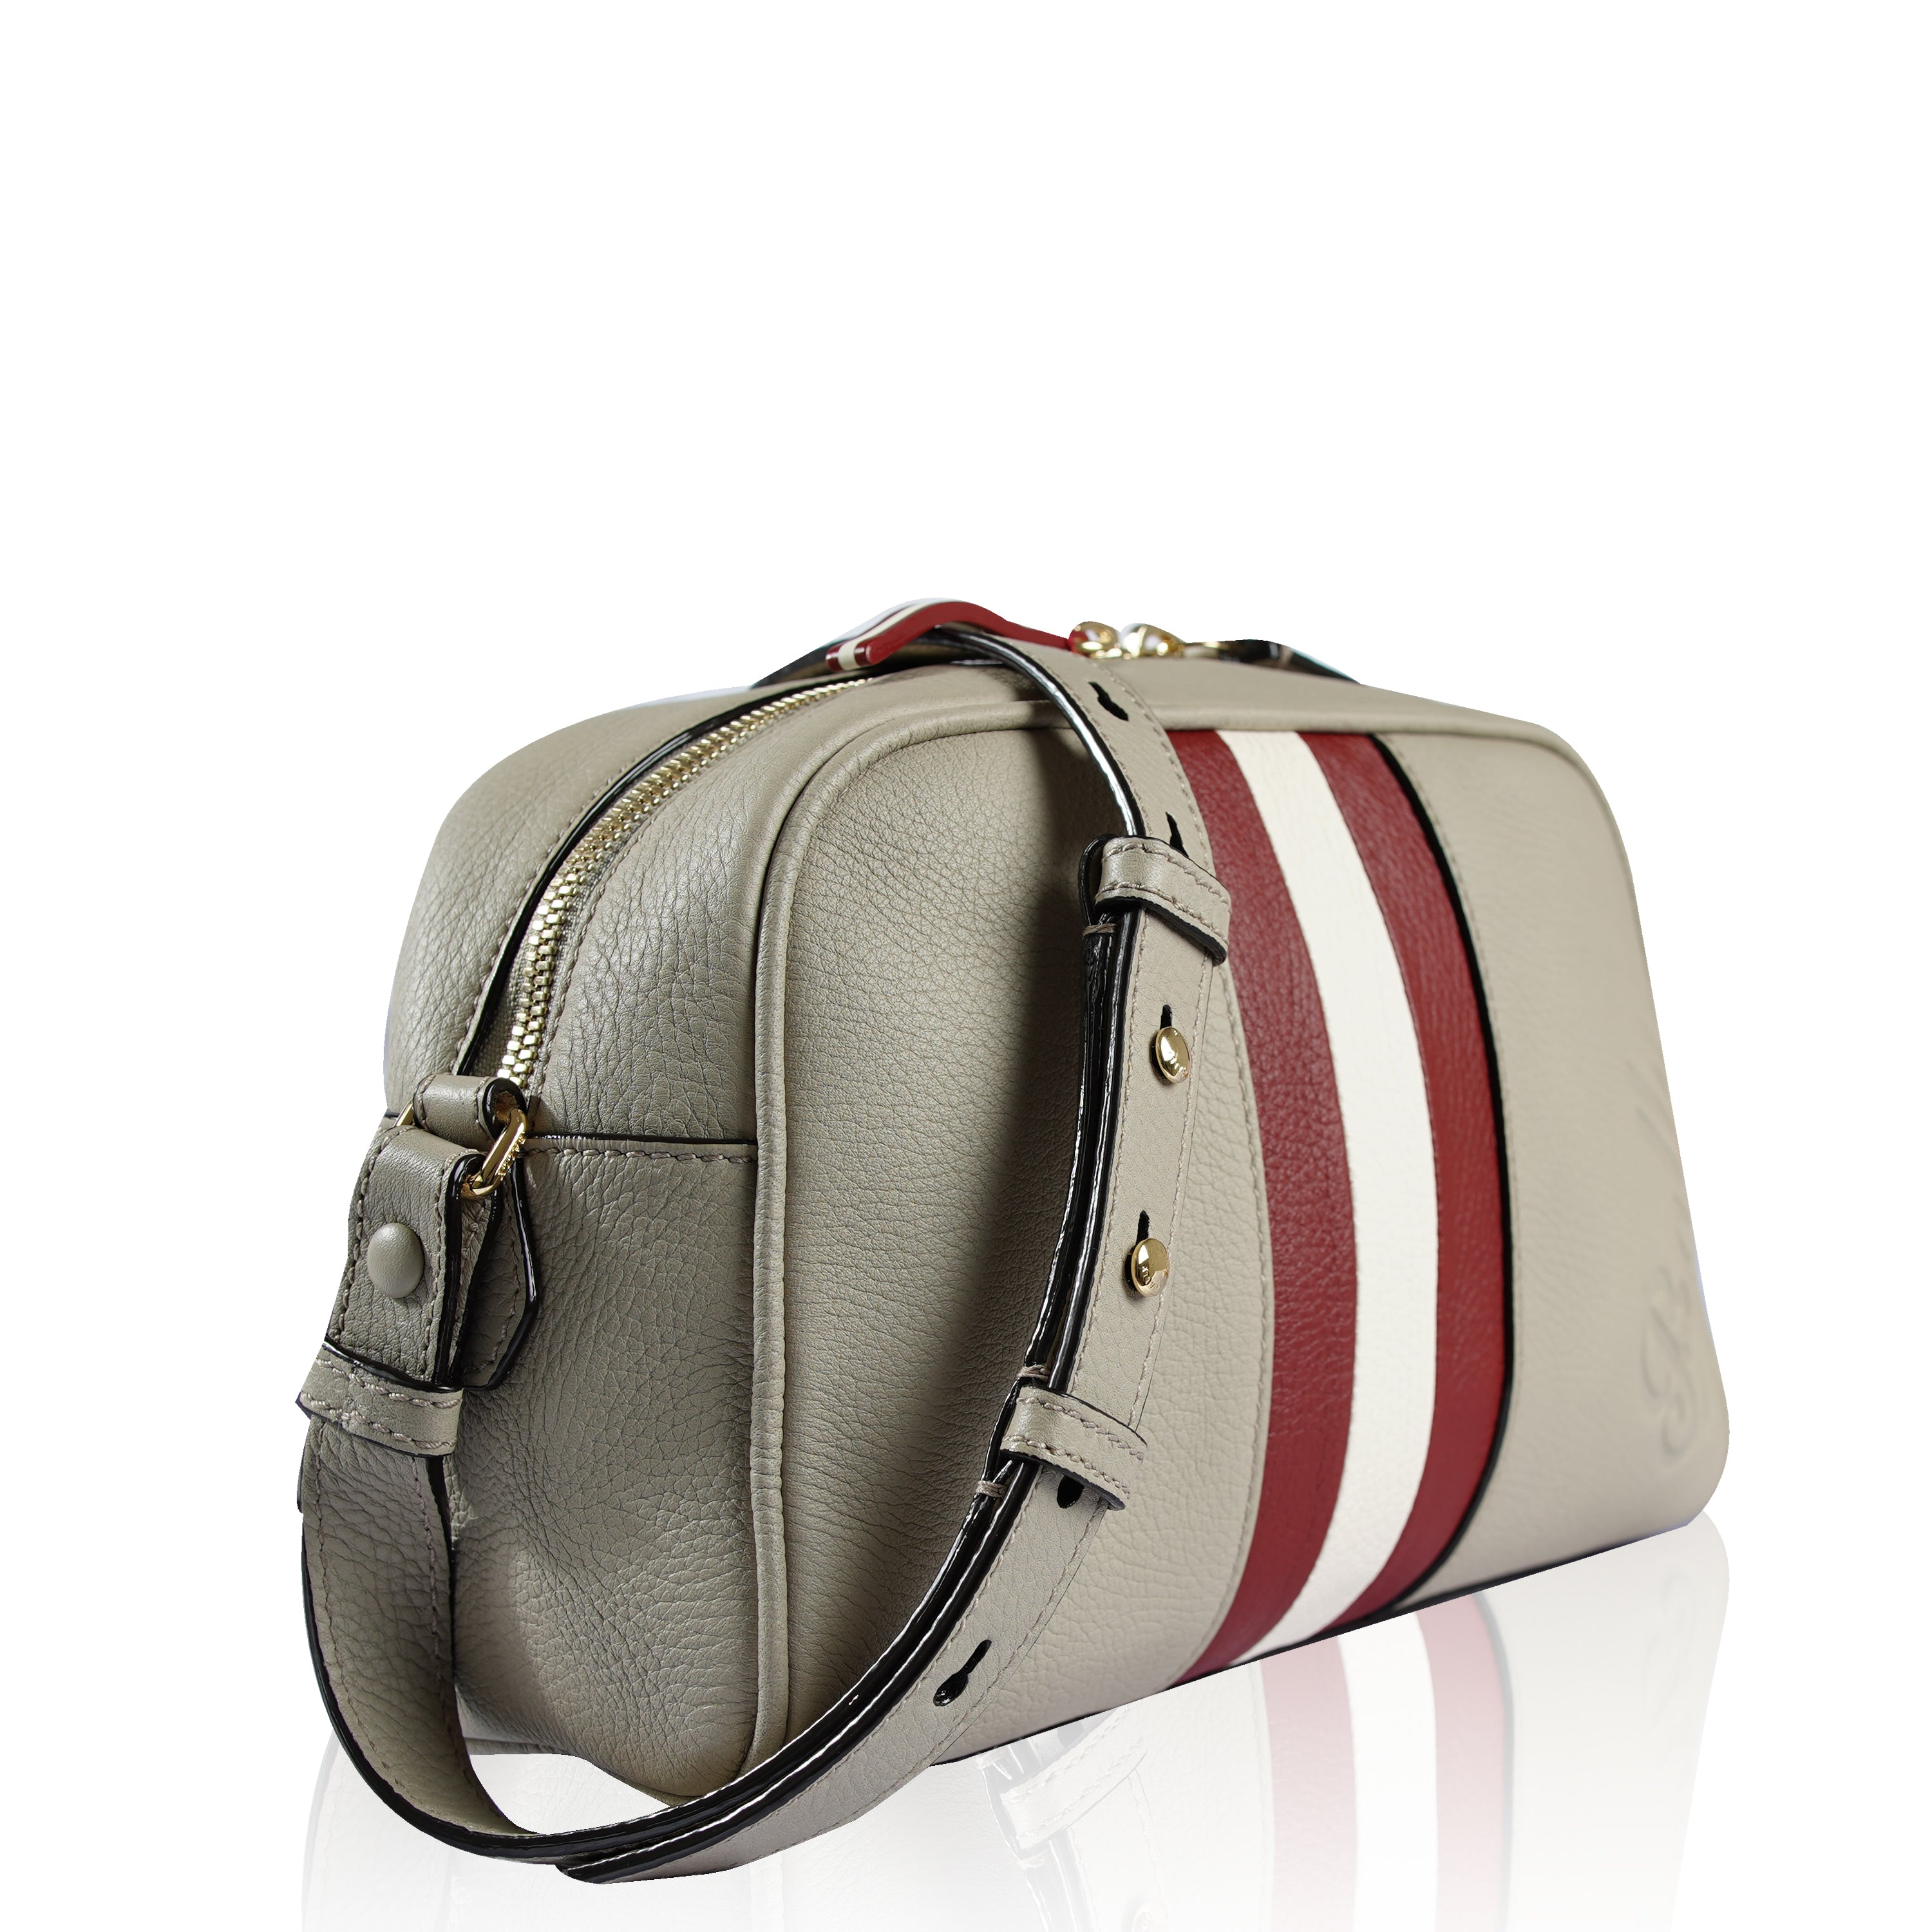 Bally Talia Mini Crossbody Bag Beige